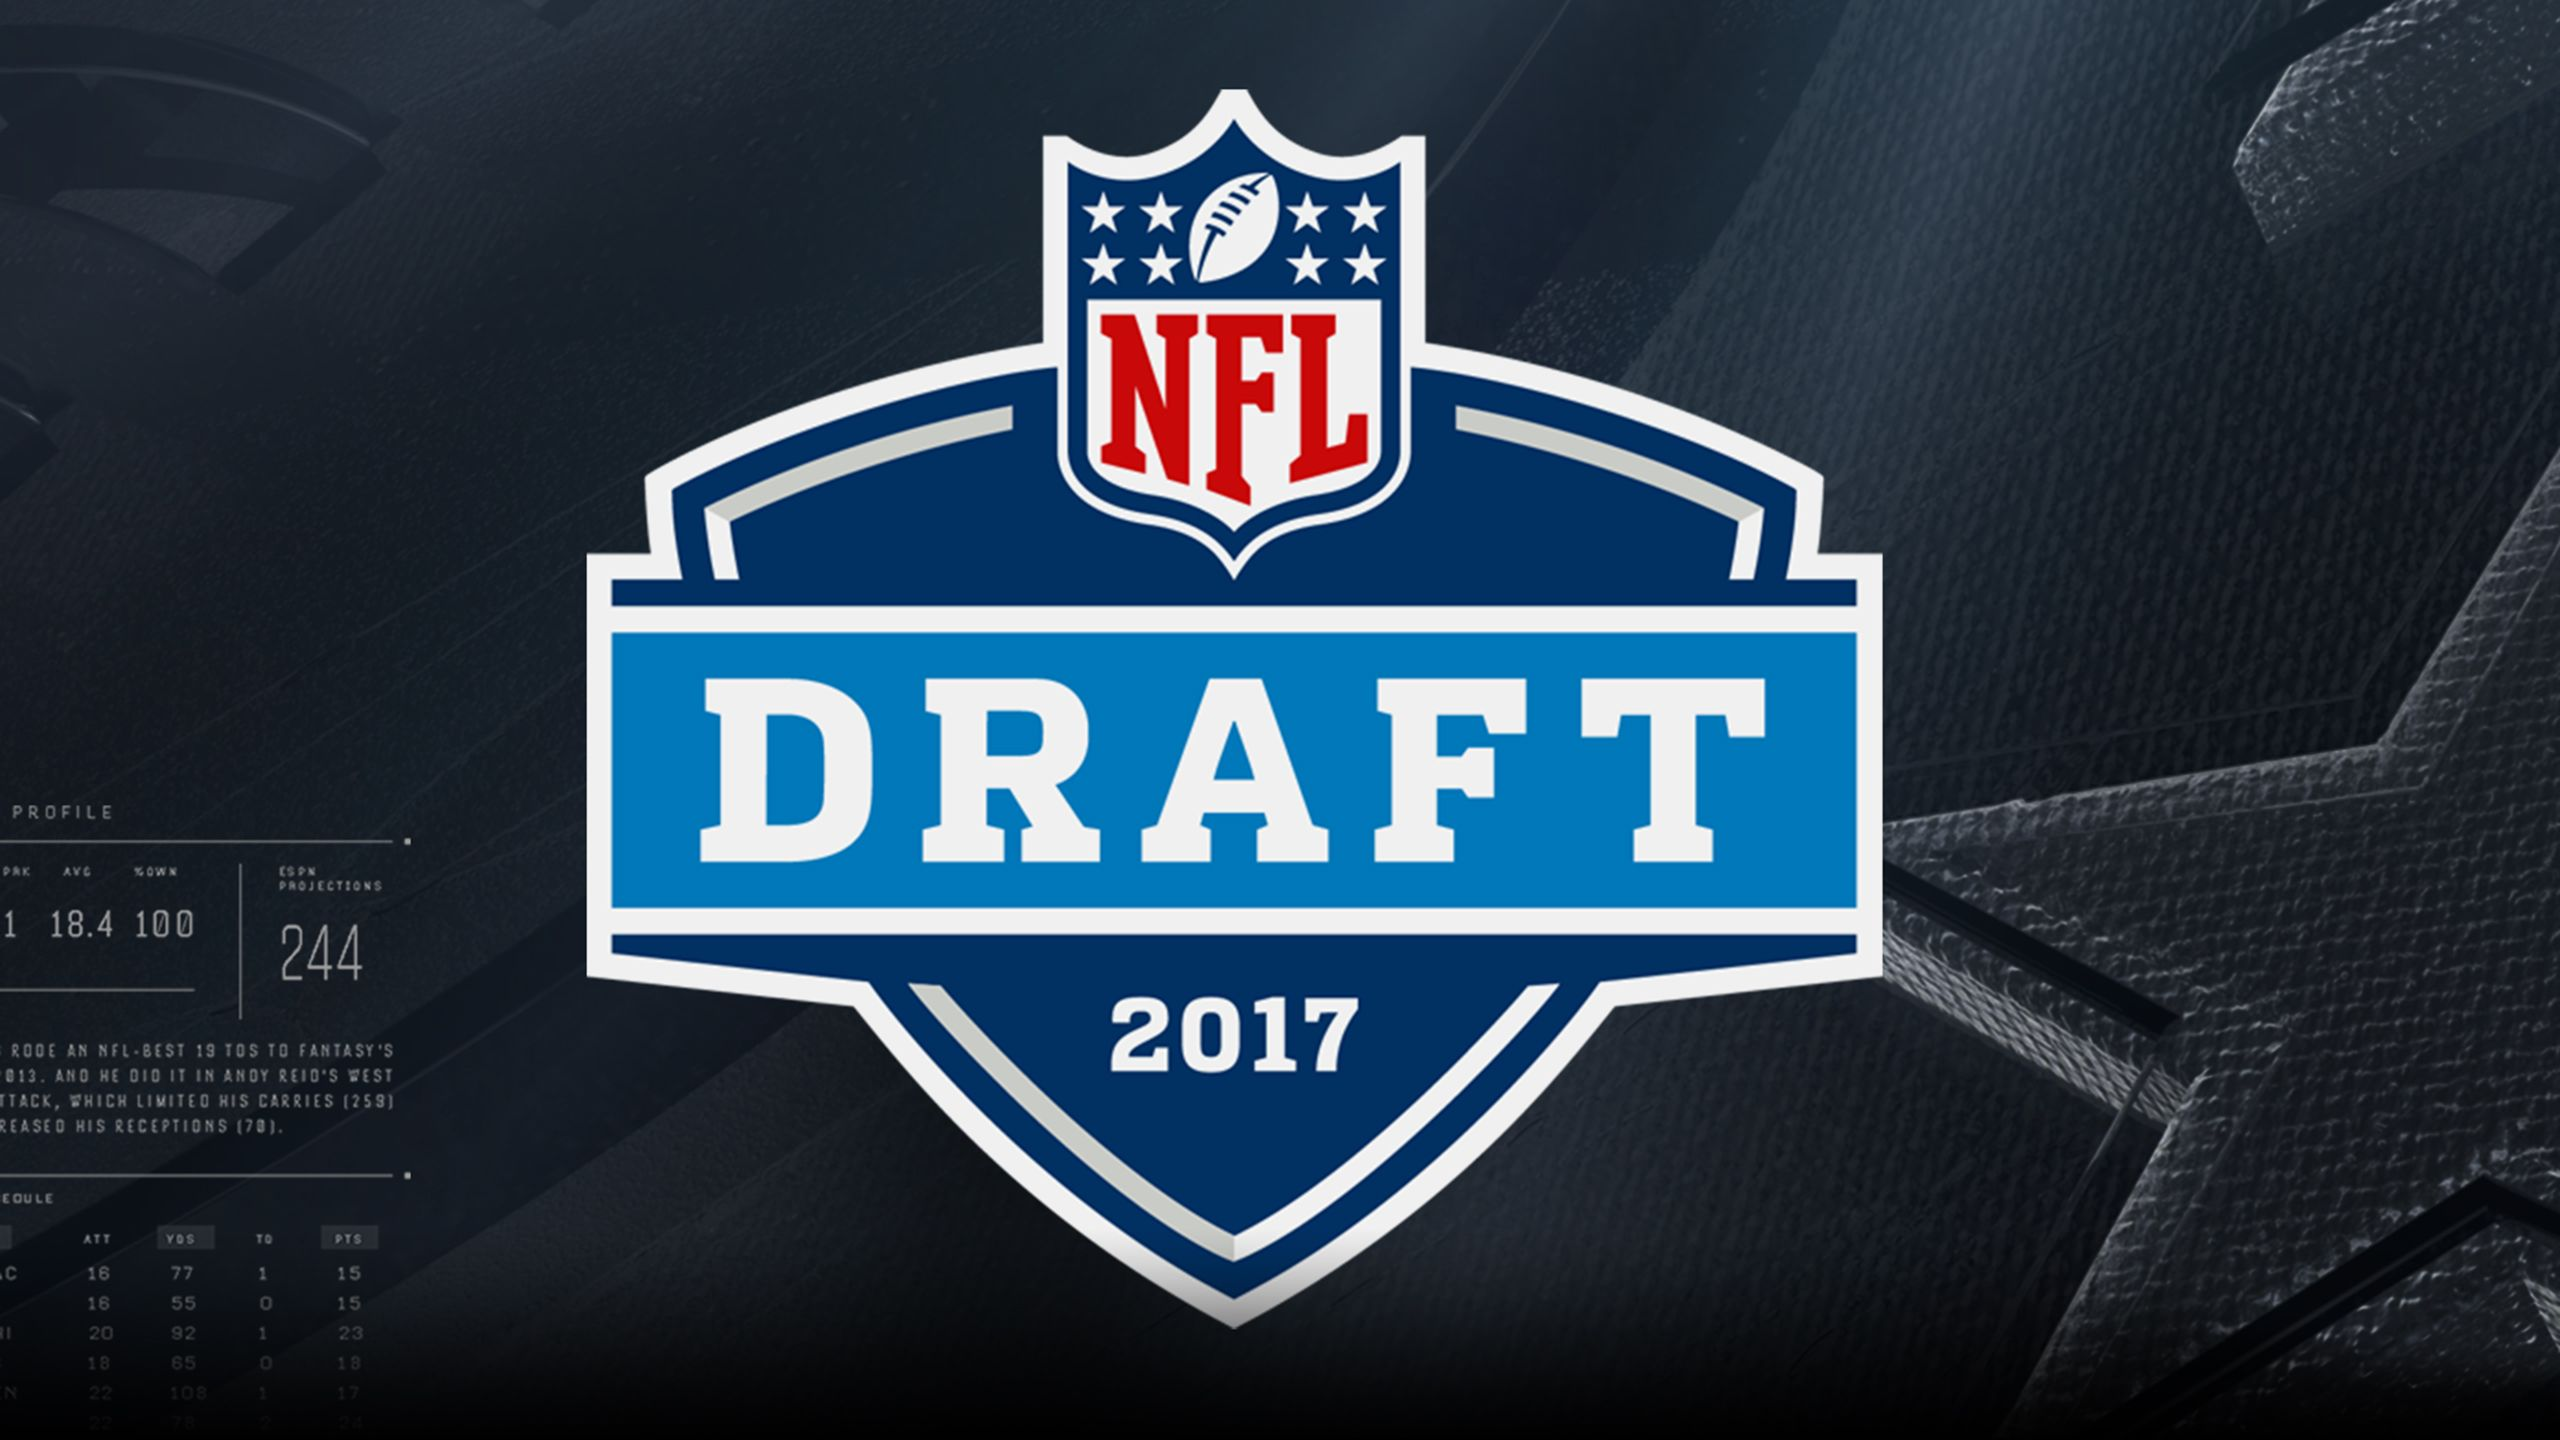 2017 NFL Draft Presented by Courtyard (Rounds 4-7)